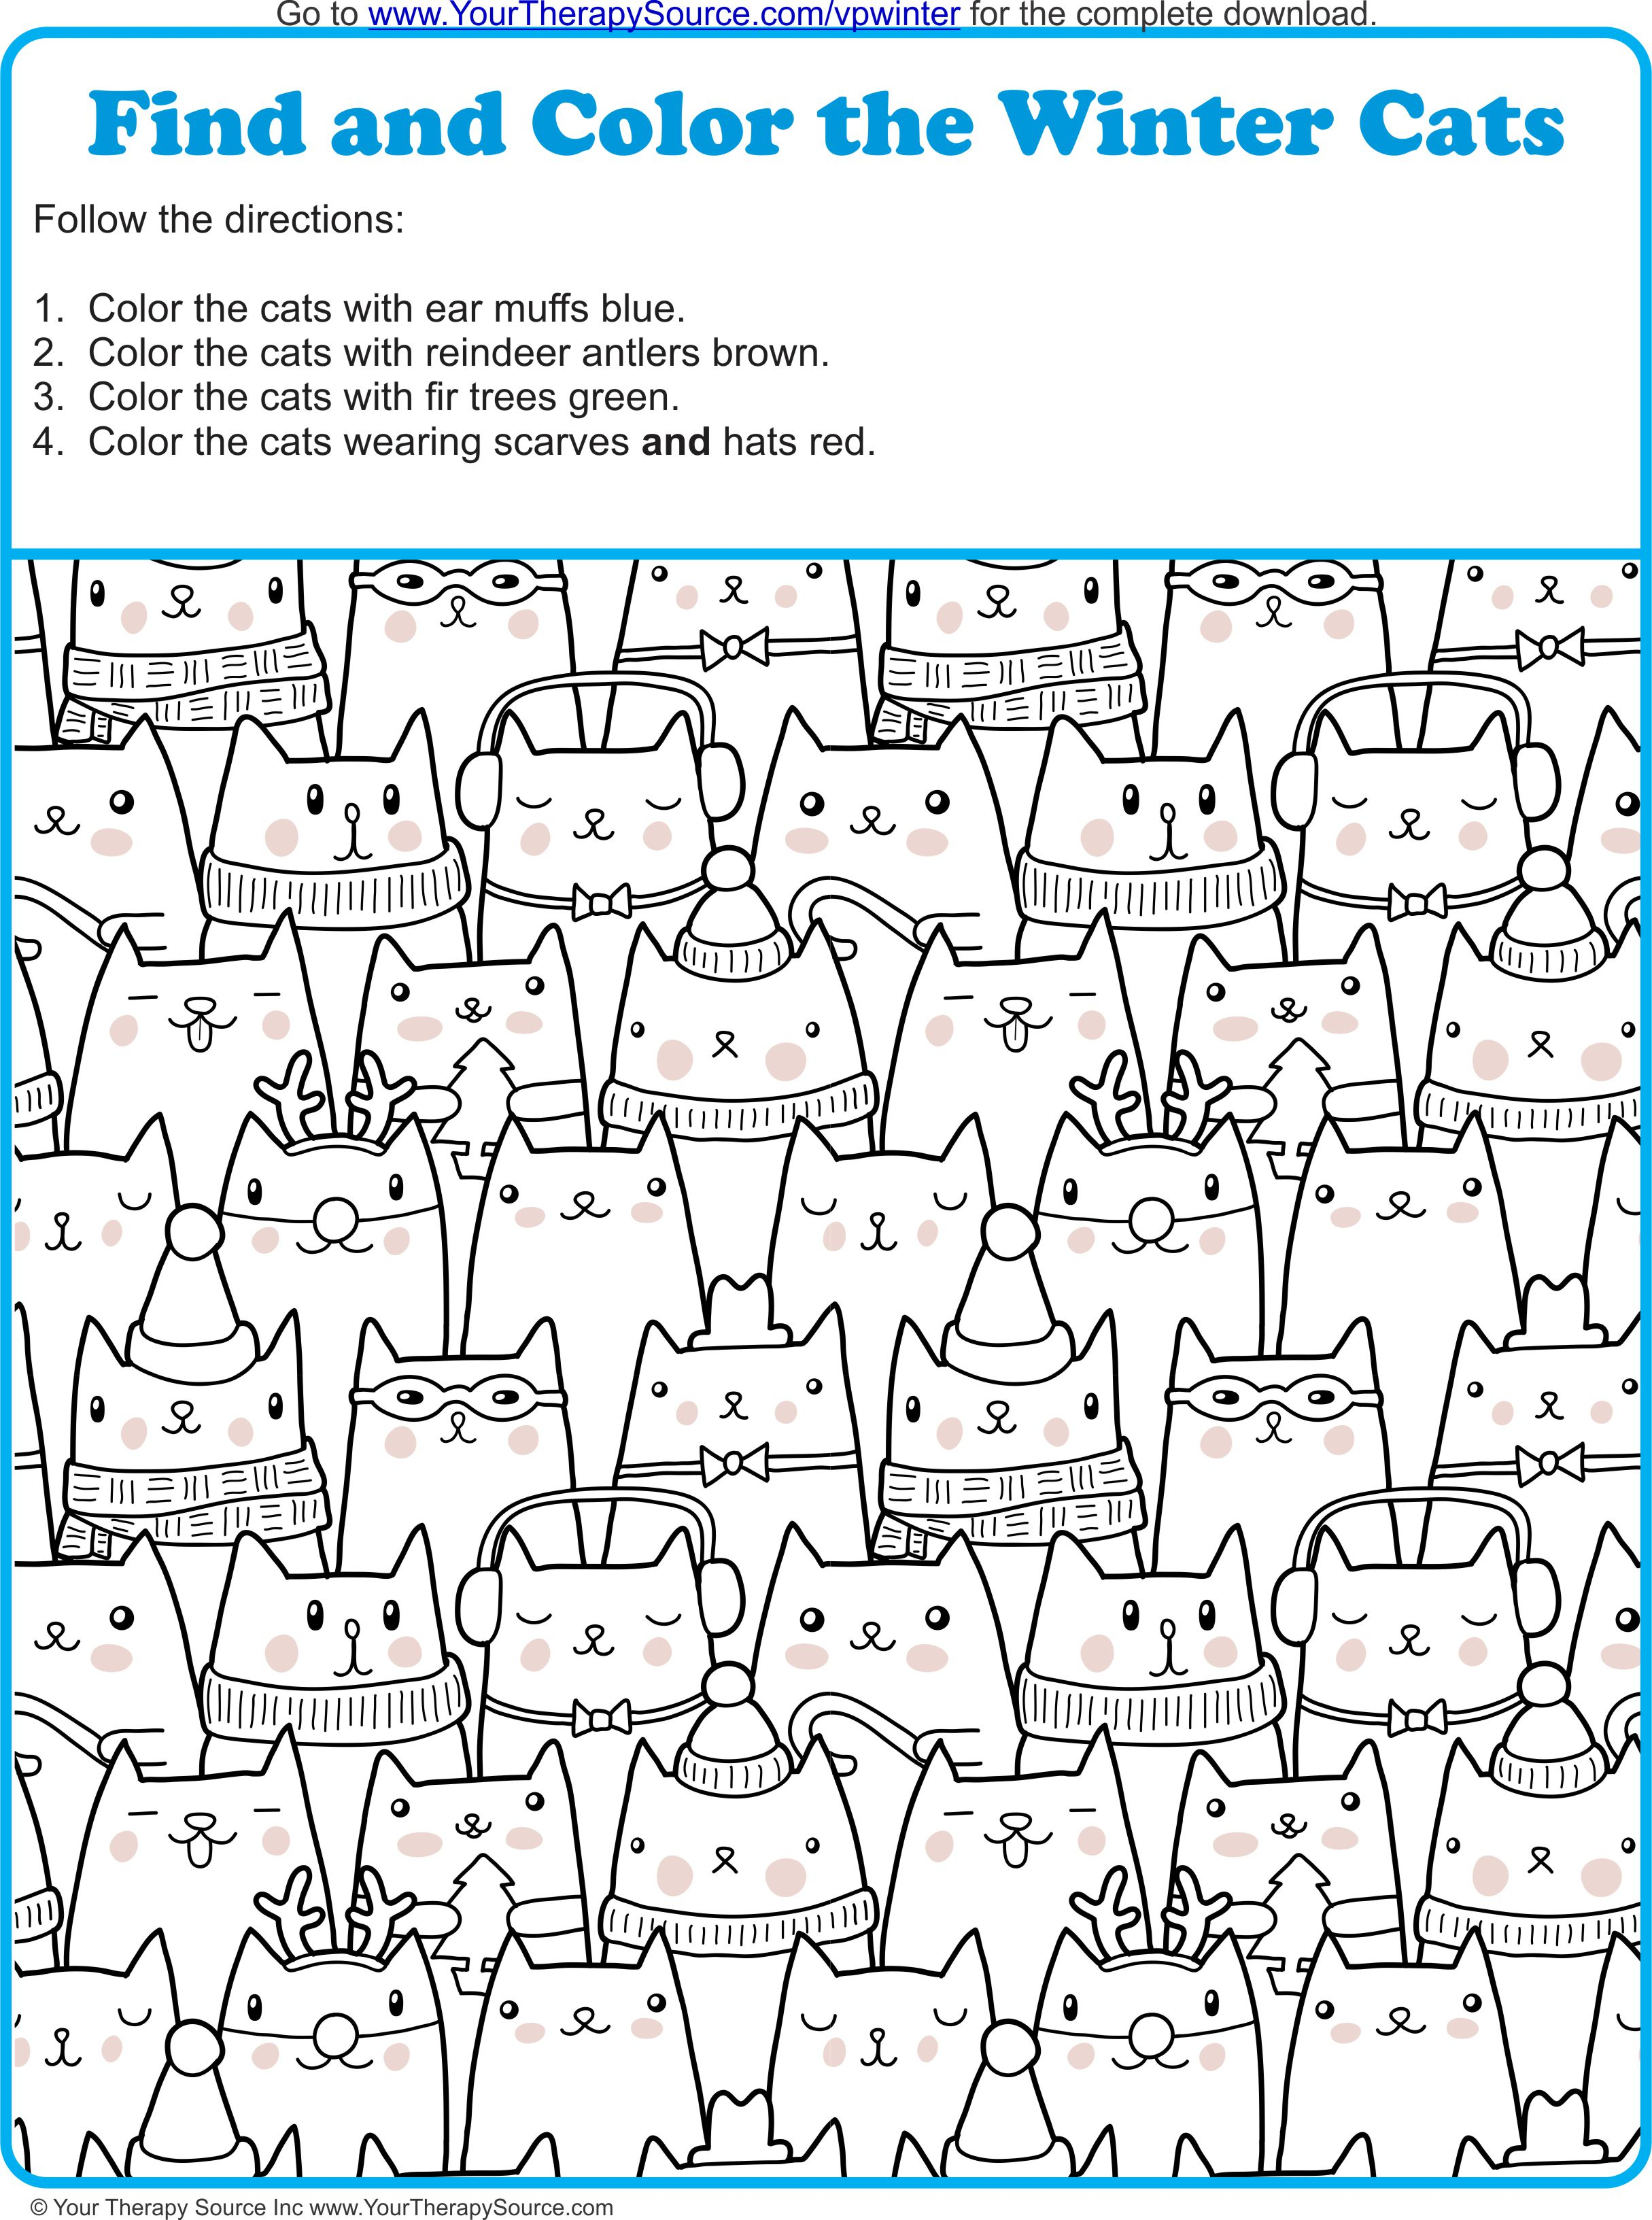 Find And Color The Winter Cats - Your Therapy Source - Printable Puzzles Winter